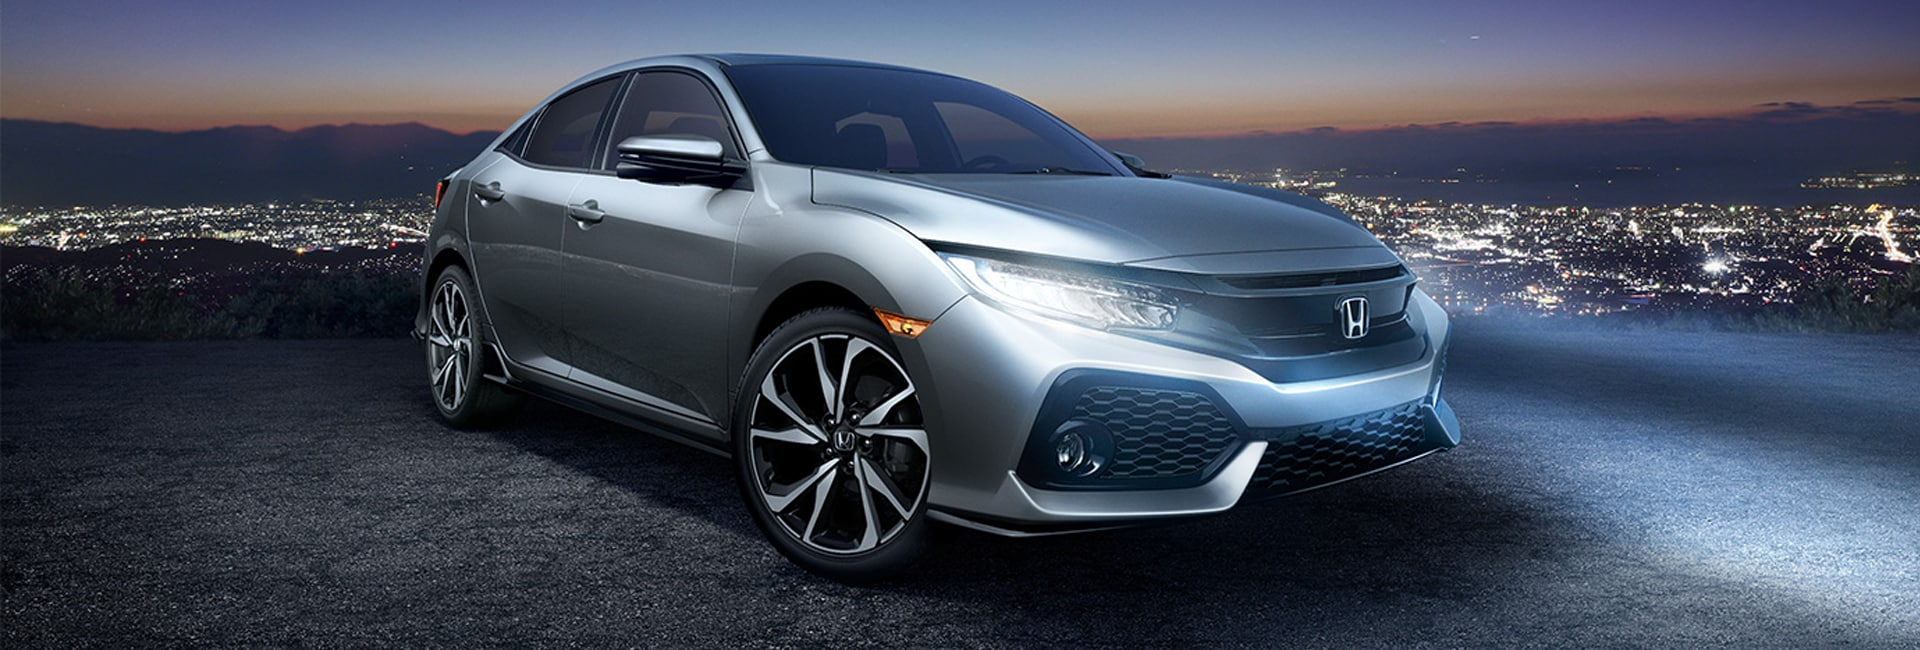 2017 Honda Civic Hatchback Exterior Features